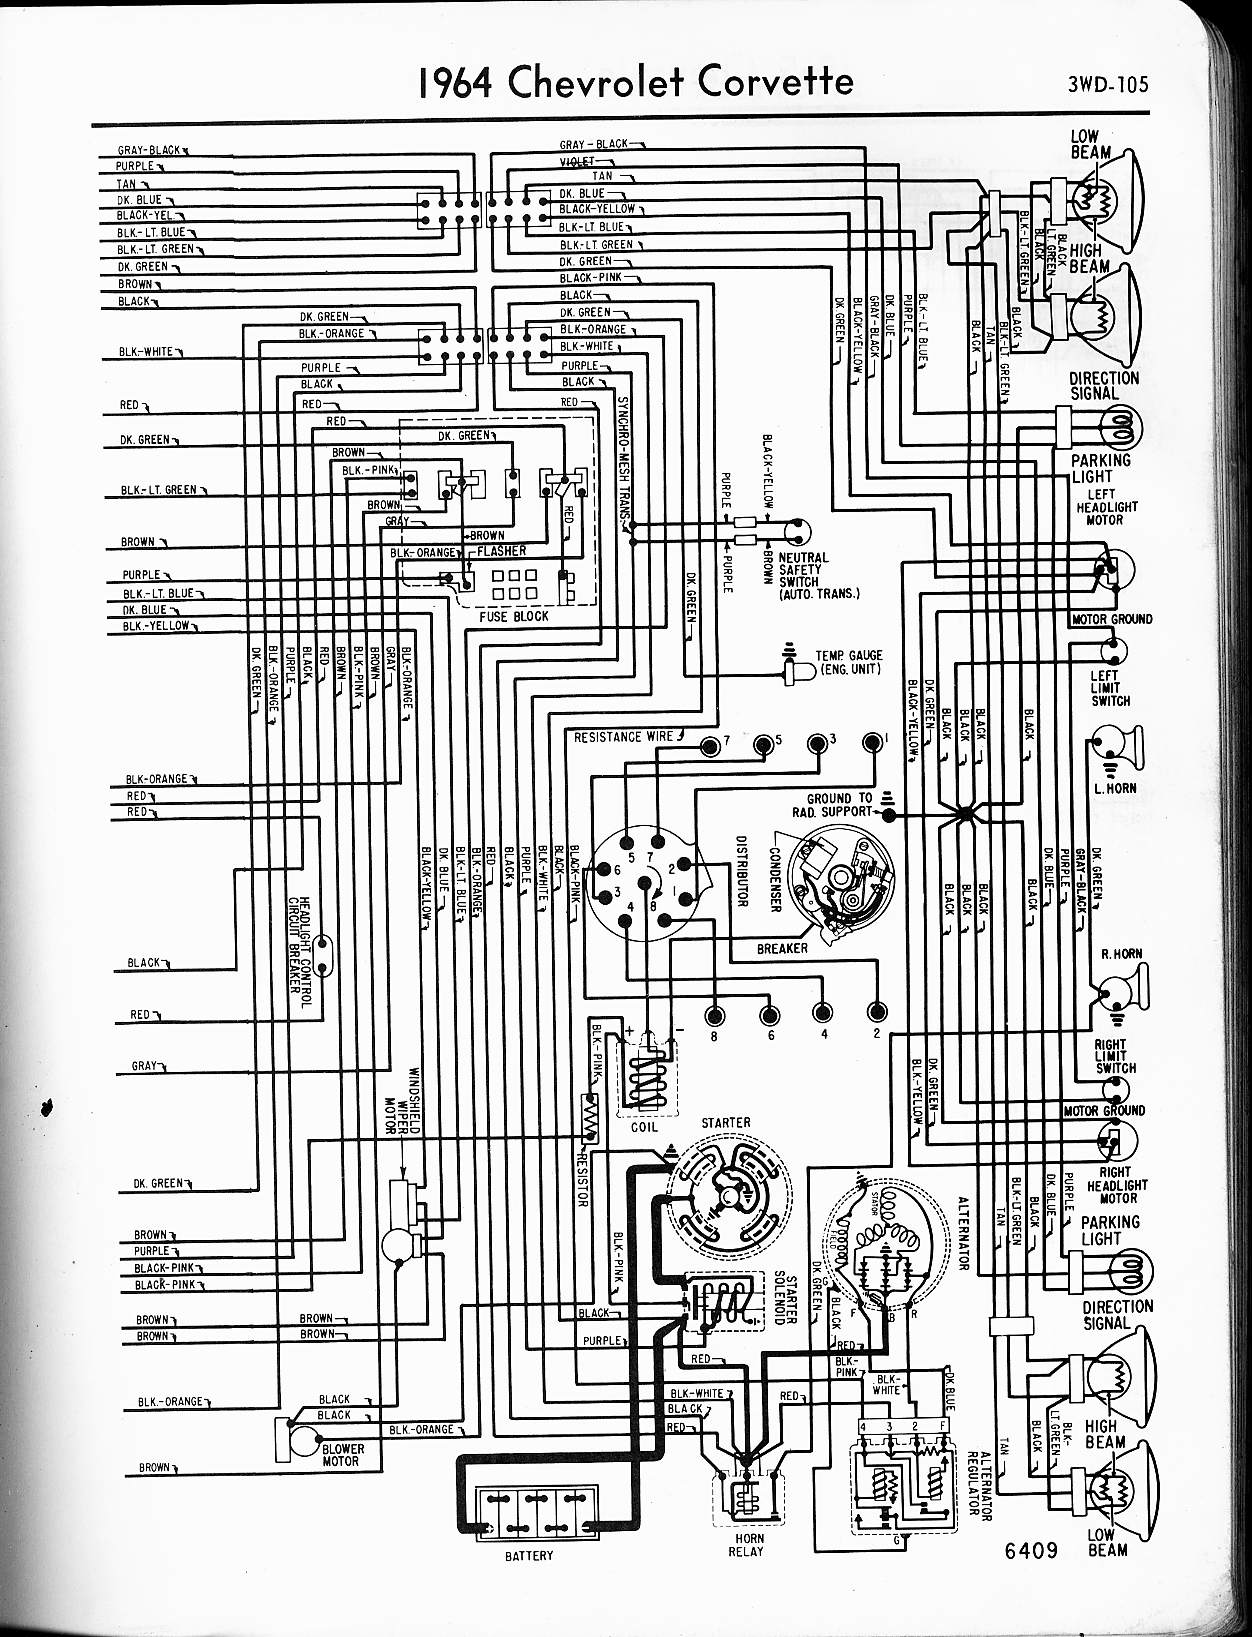 1973 impala a c wire diagram diy enthusiasts wiring diagrams u2022 rh broadwaycomputers us Ford F-250 Wiring Diagram AC Motor Wiring Diagram